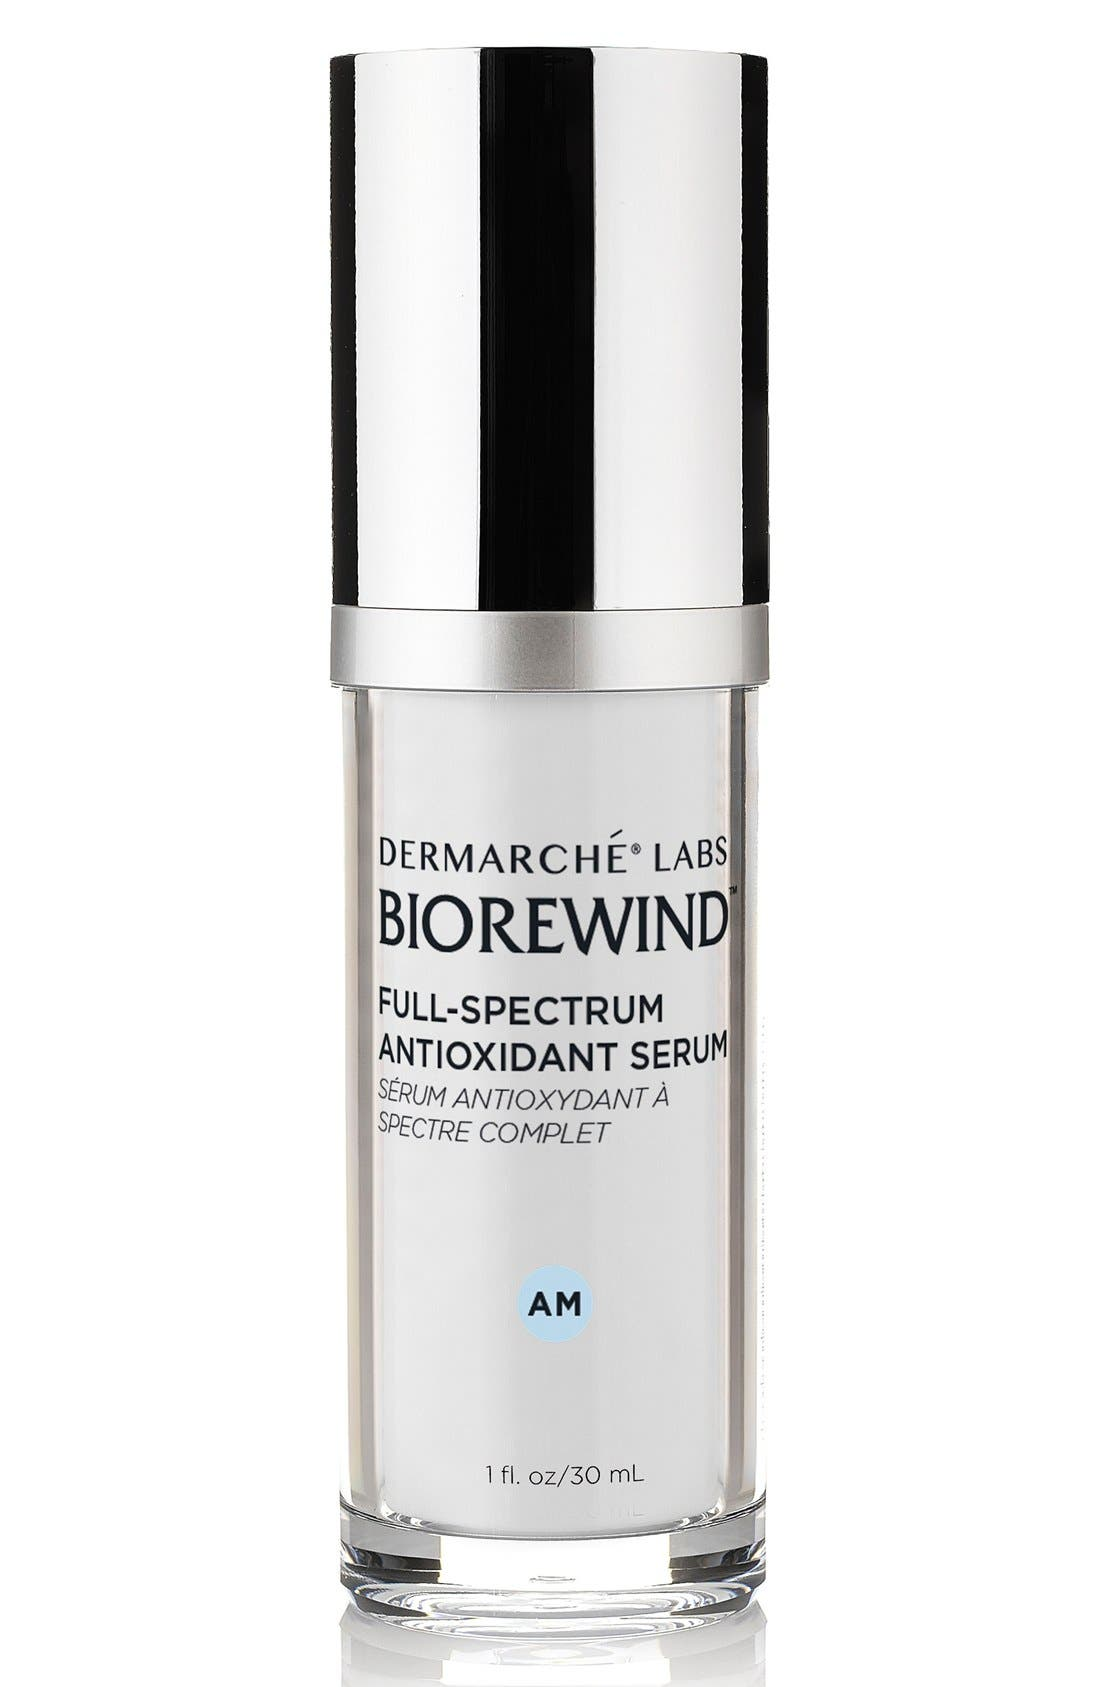 Dermarché<sup>®</sup> Labs 'BioRewind AM' Full-Spectrum Antioxidant Serum,                             Main thumbnail 1, color,                             NO COLOR